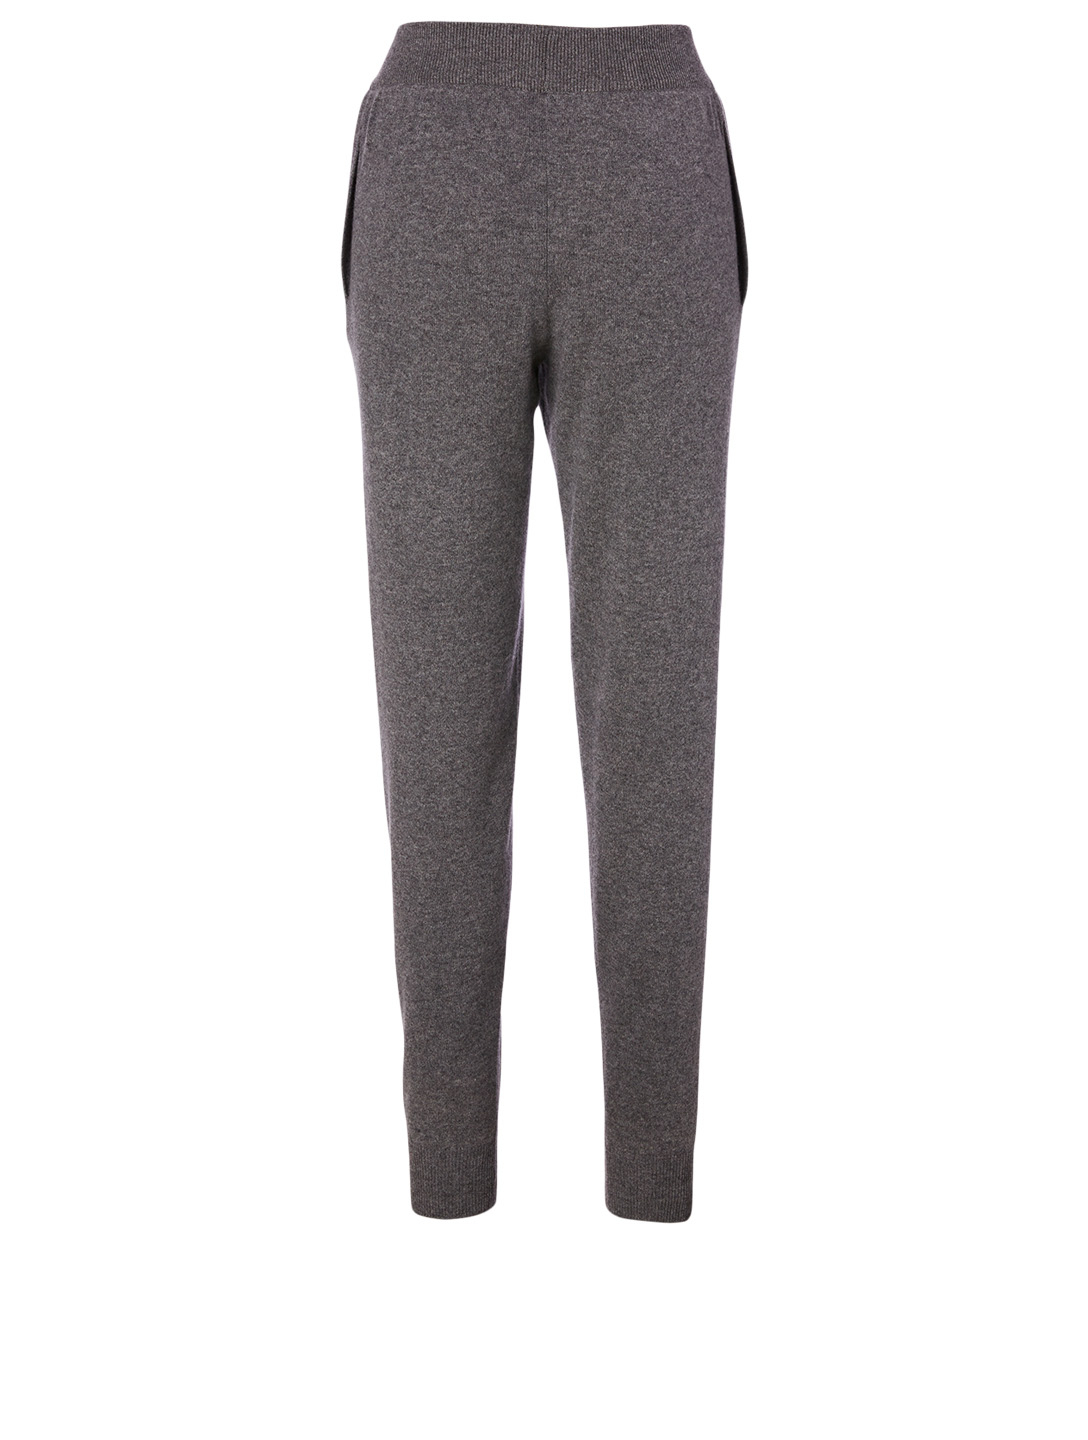 THE ROW Ardo Cashmere Jogger Pants Women's Grey